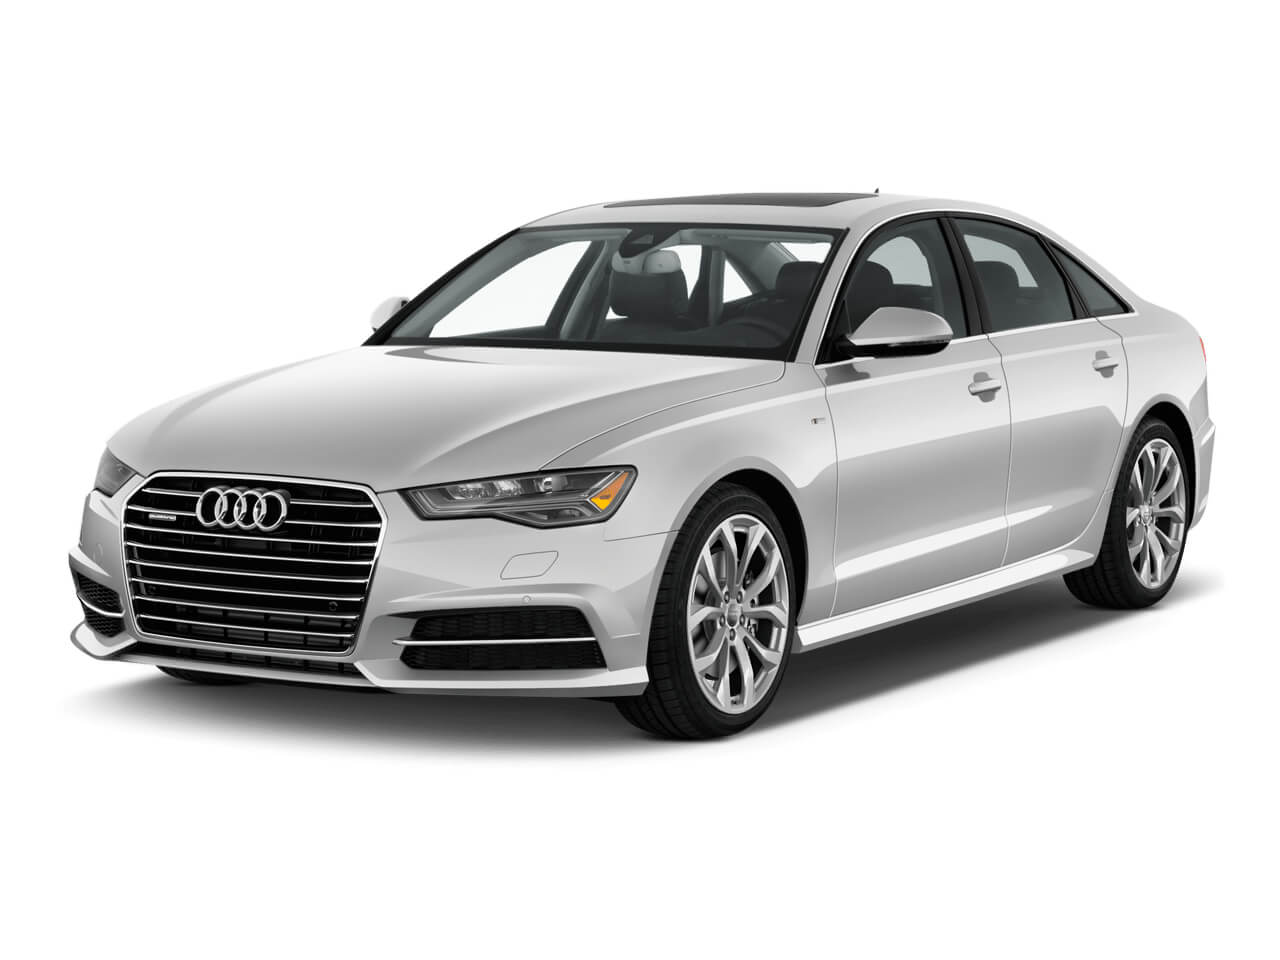 Audi A6 Luxury Car For Rent at Pacific Car Rentals